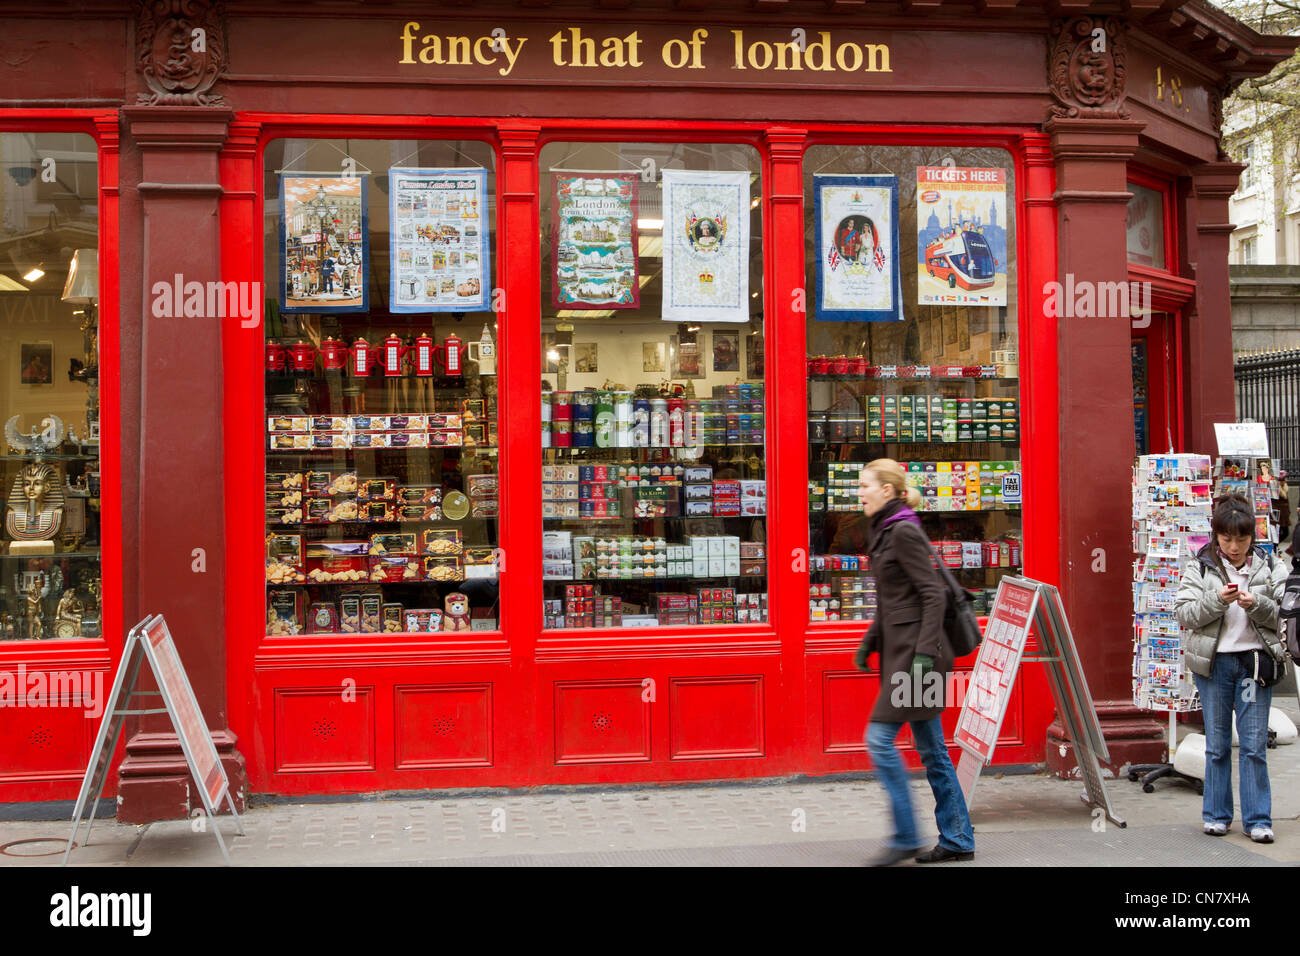 People walking past a shop selling traditional English gifts, London, England, UK - Stock Image